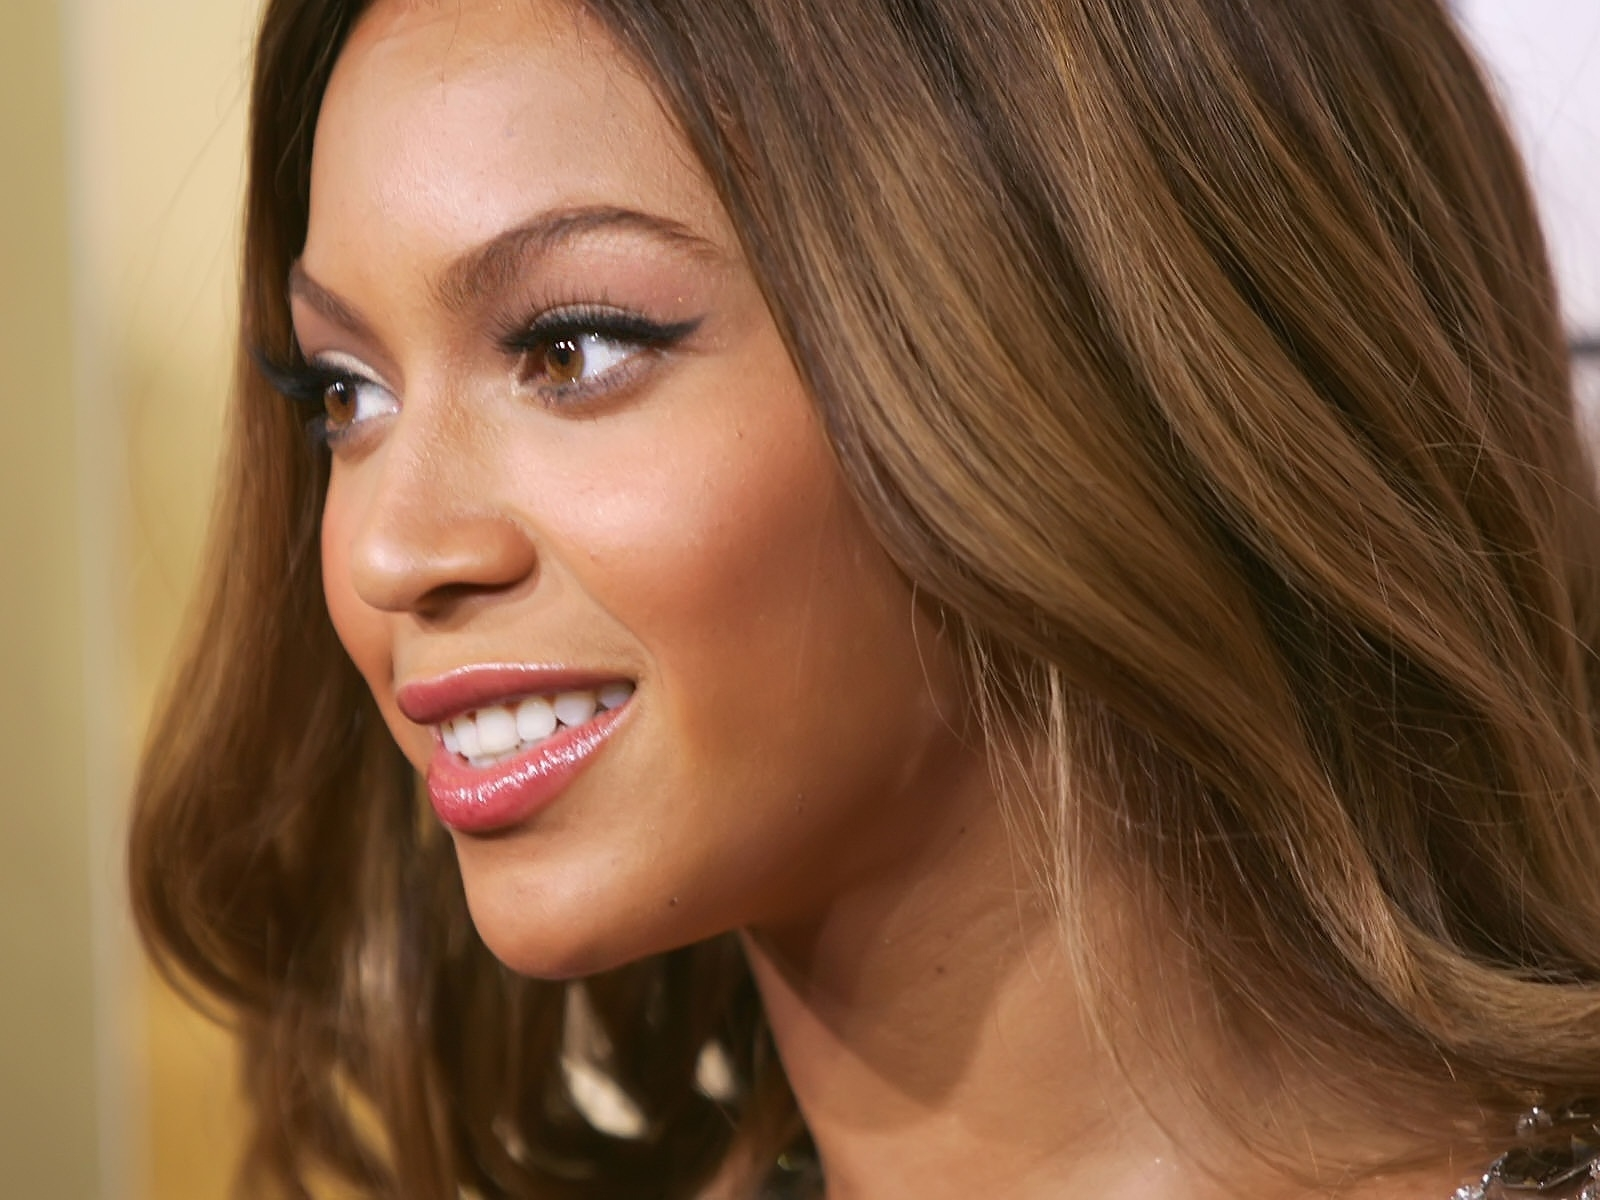 Beyonce Knowles beautiful for 1600 x 1200 resolution